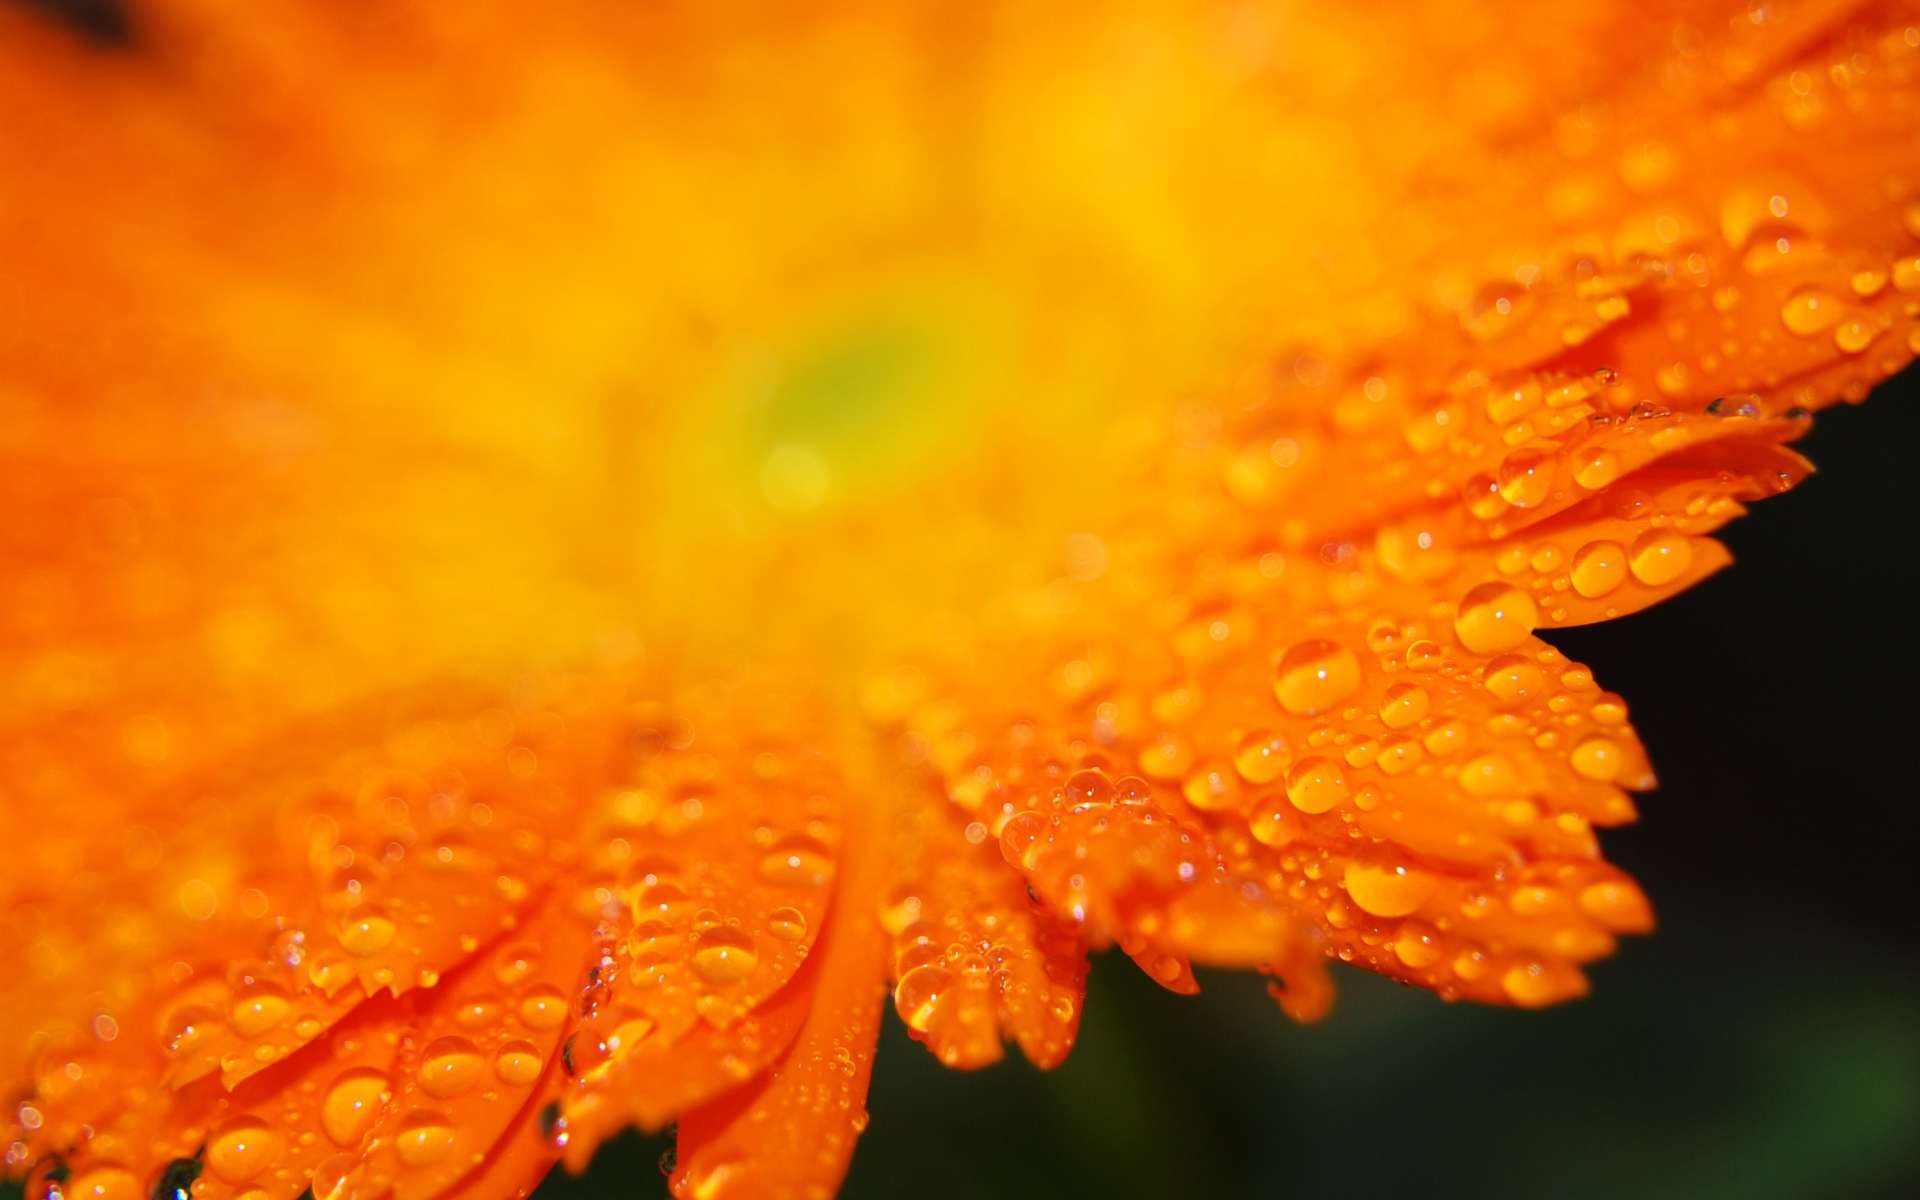 Beautiful Orange Flower Wallpaper · Orange Flower · Orange Flower · Orange Flower HD ...